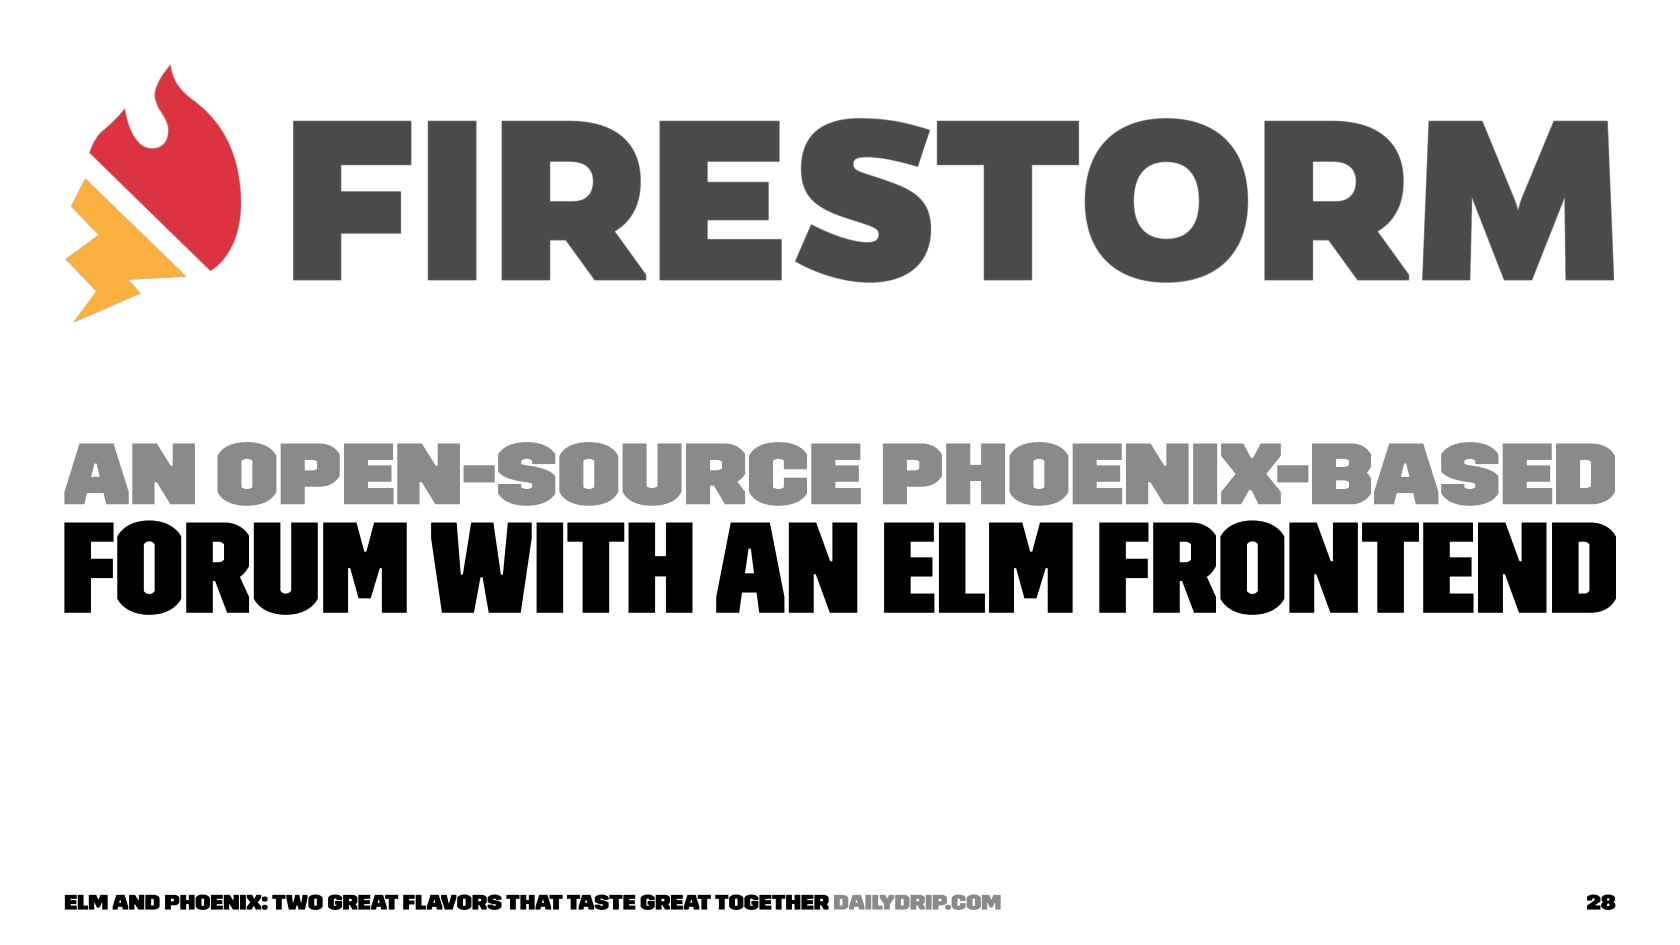 Elm and Phoenix: Two FP Flavors That Taste Great Together